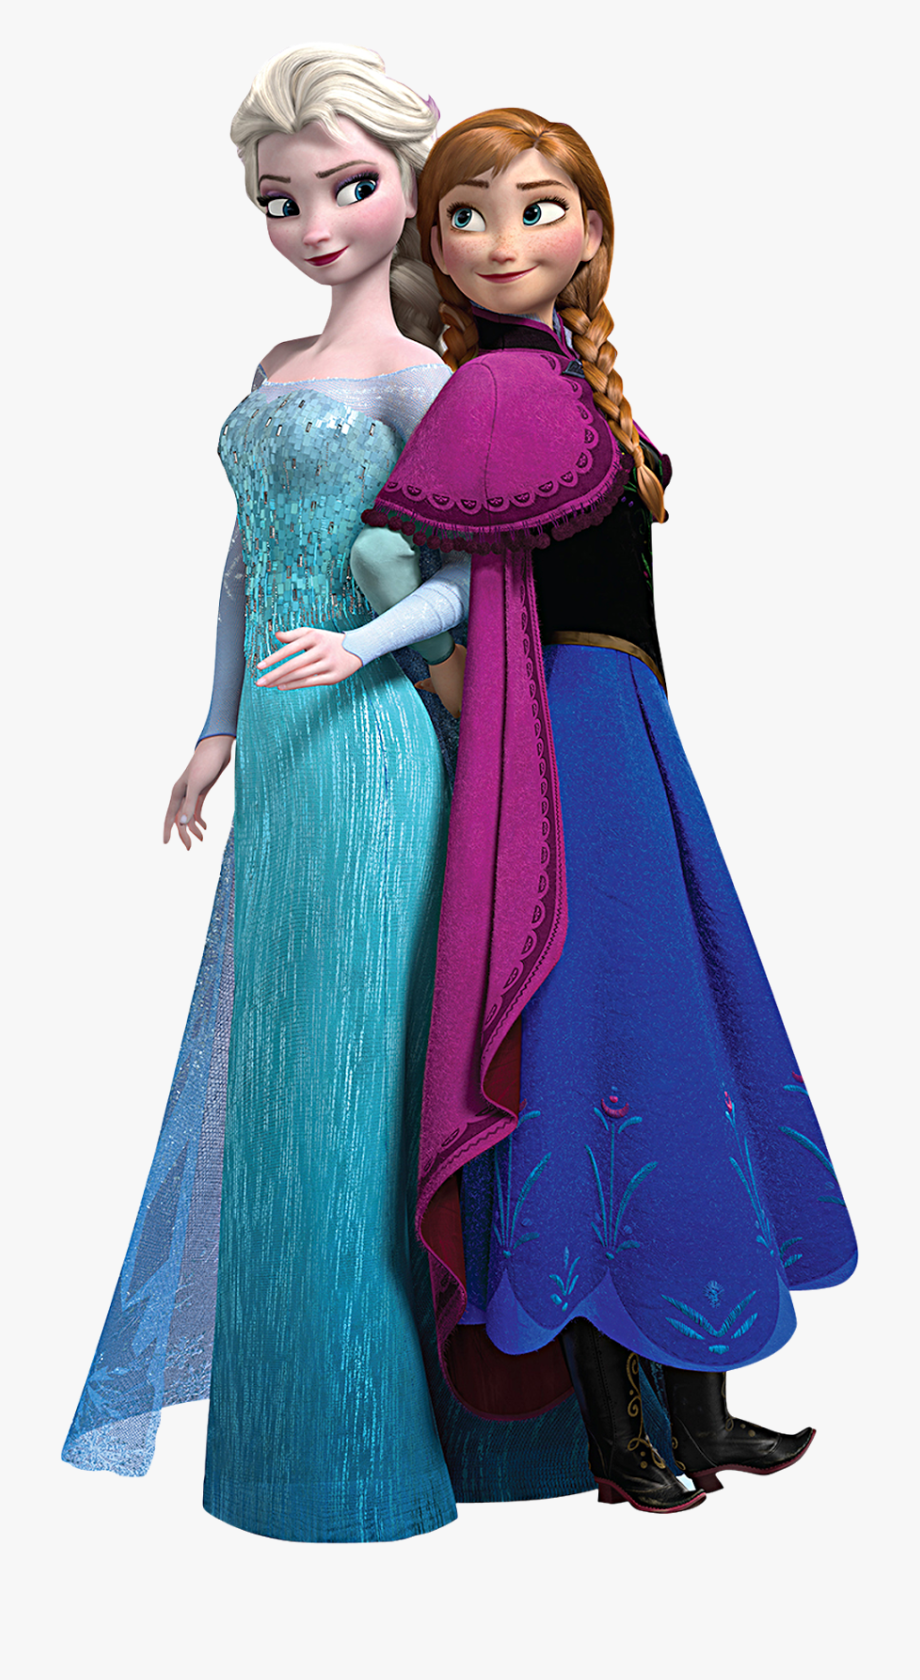 Frozen clipart elsa anna. And clipartuse from tons